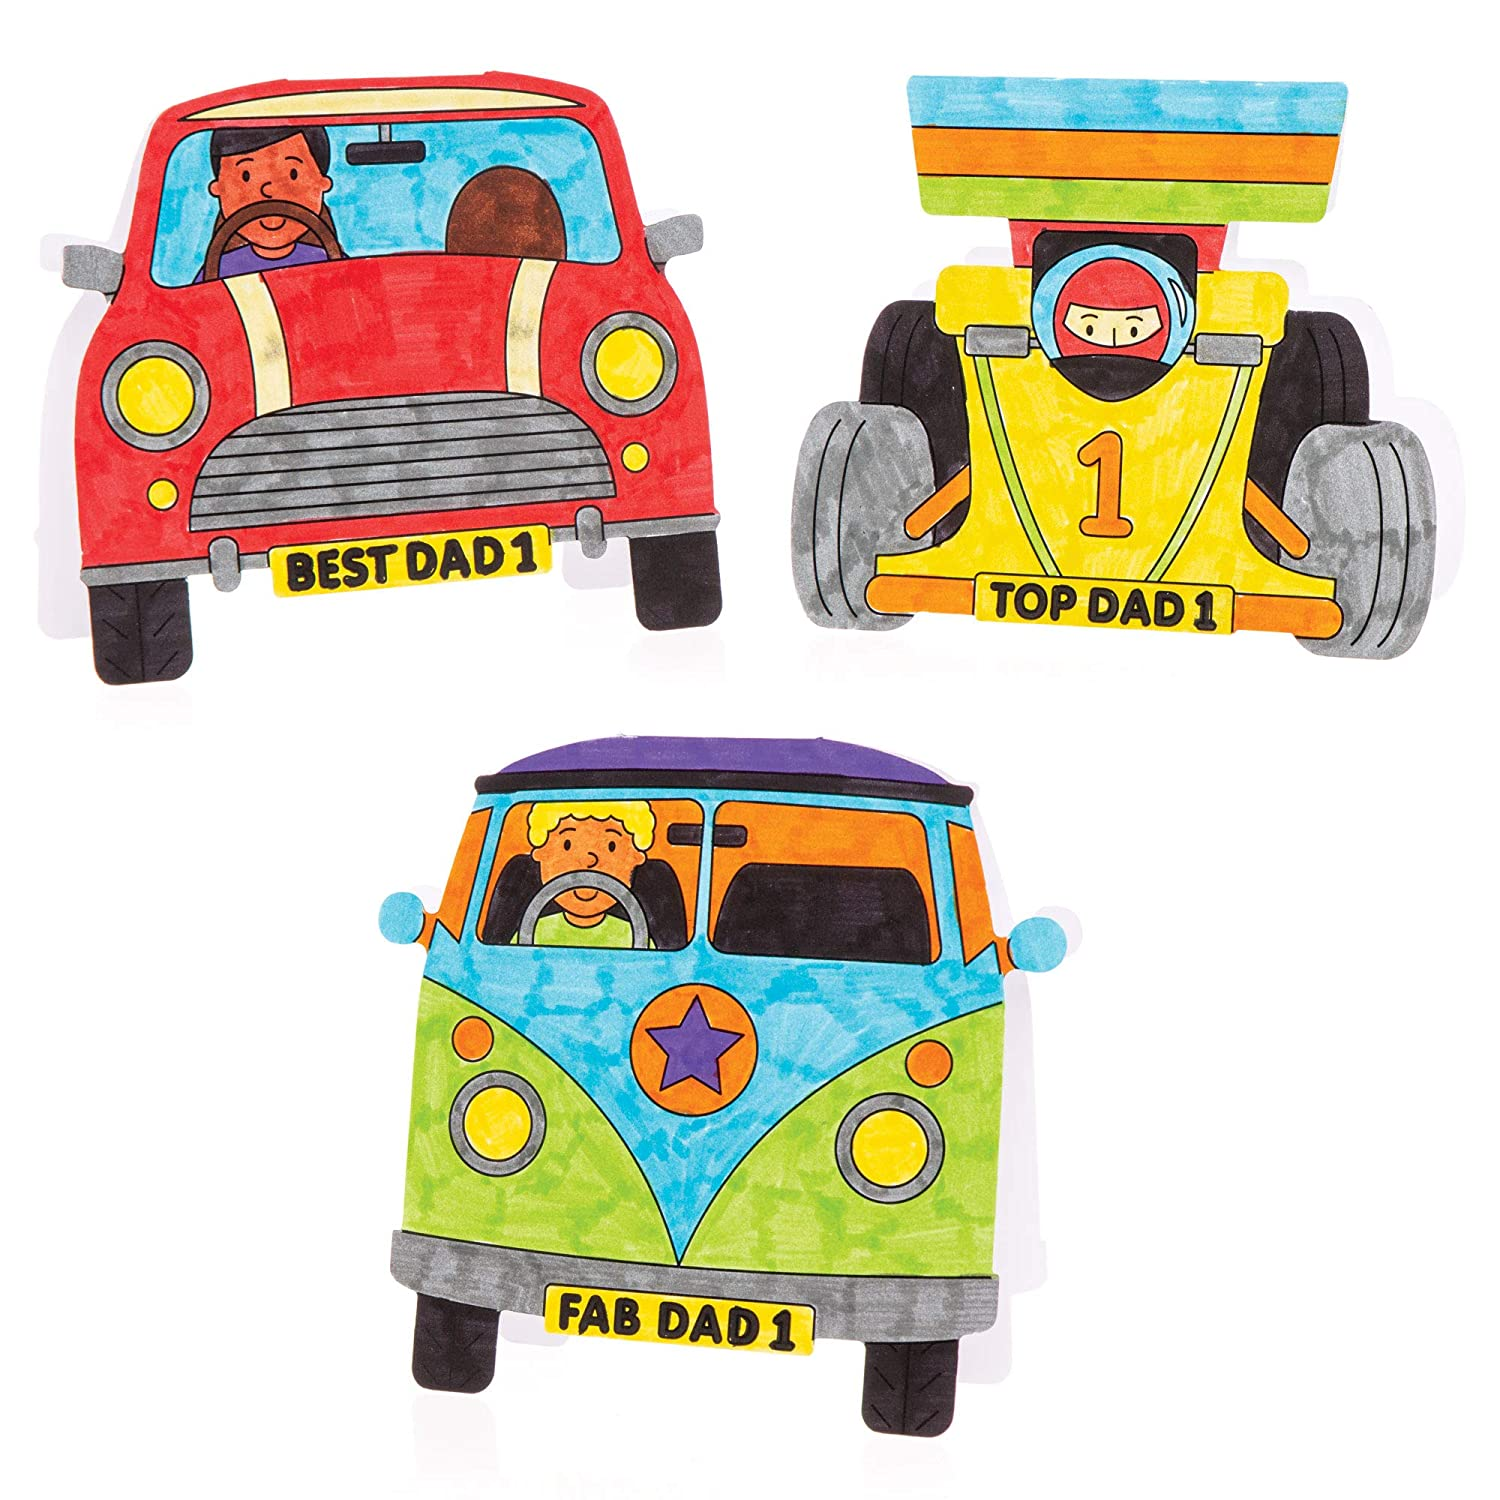 Pack of 8 for Kids To Decorate Personalise and Gift for Fathers Day Baker Ross Fathers Day Car Color in Cards